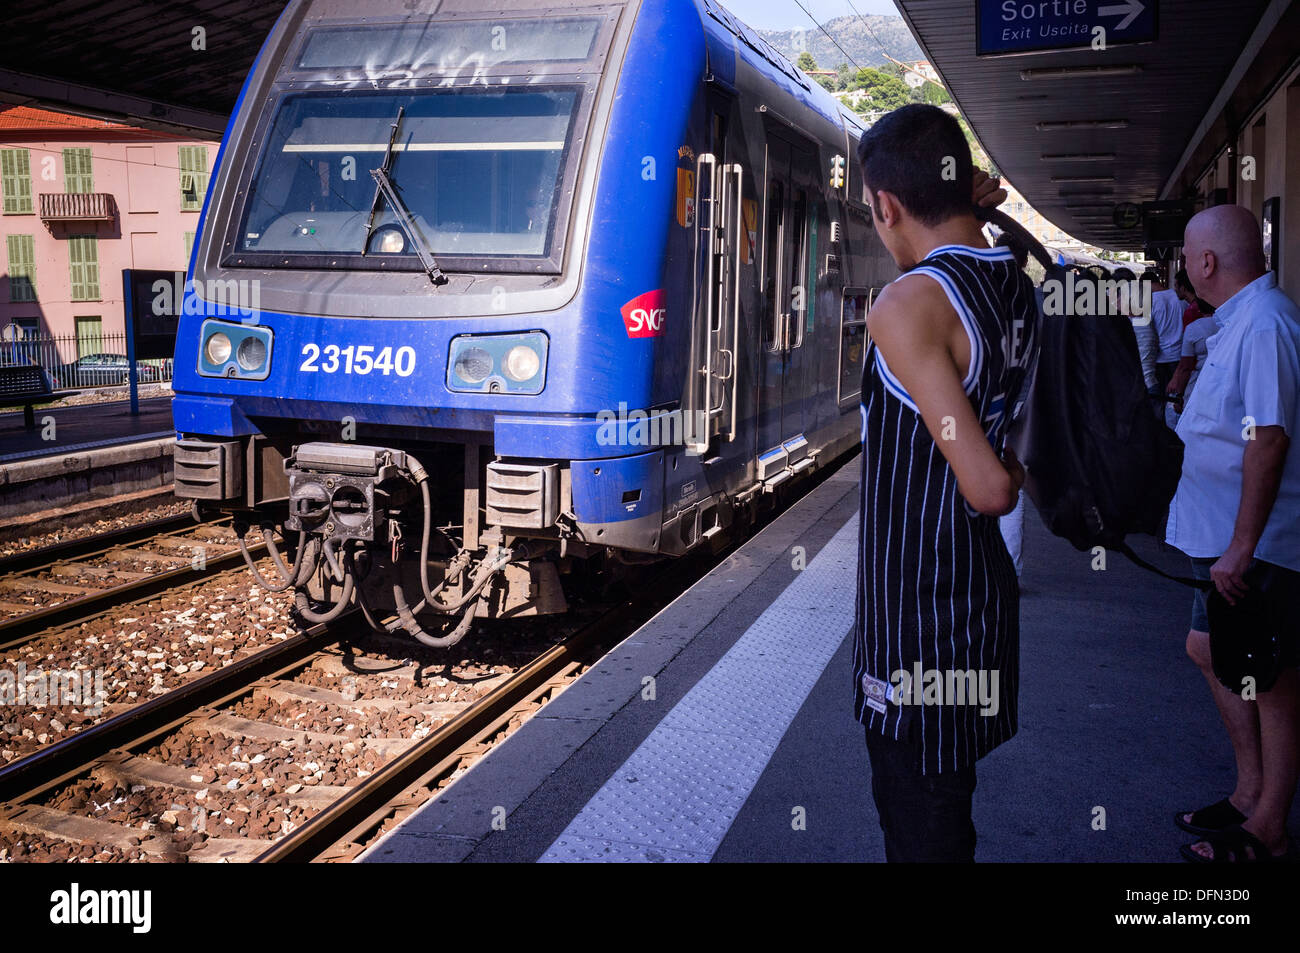 French SNCF Train pulling into station. - Stock Image